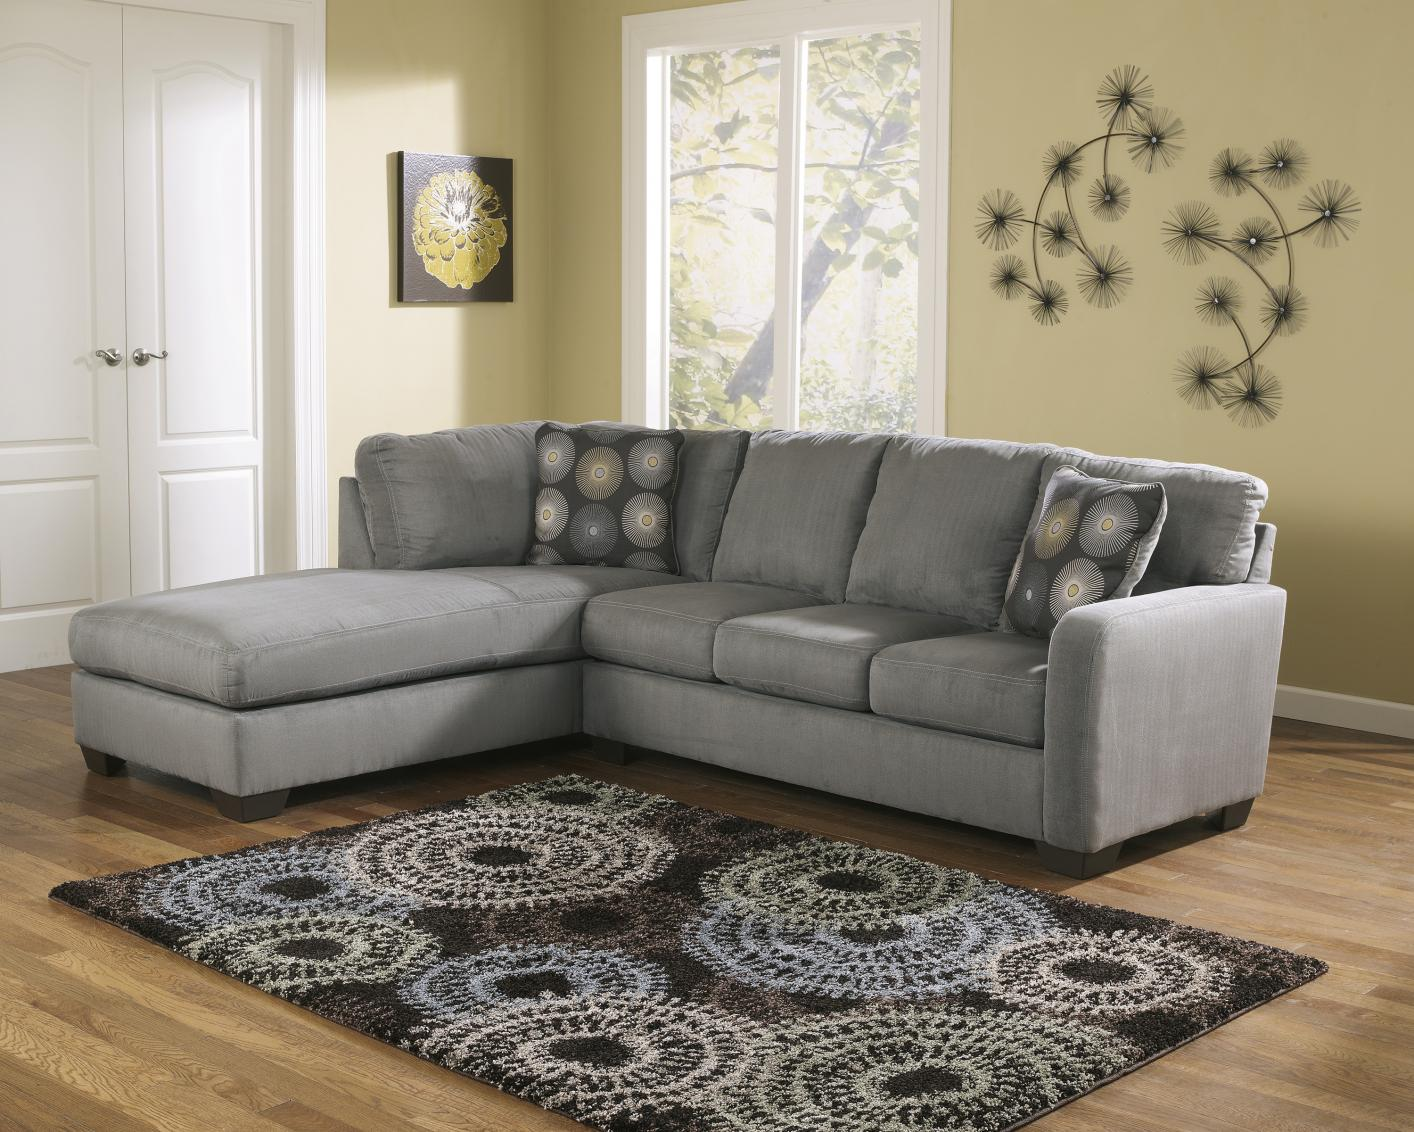 Lovely Grey Fabric Sectional Sofa